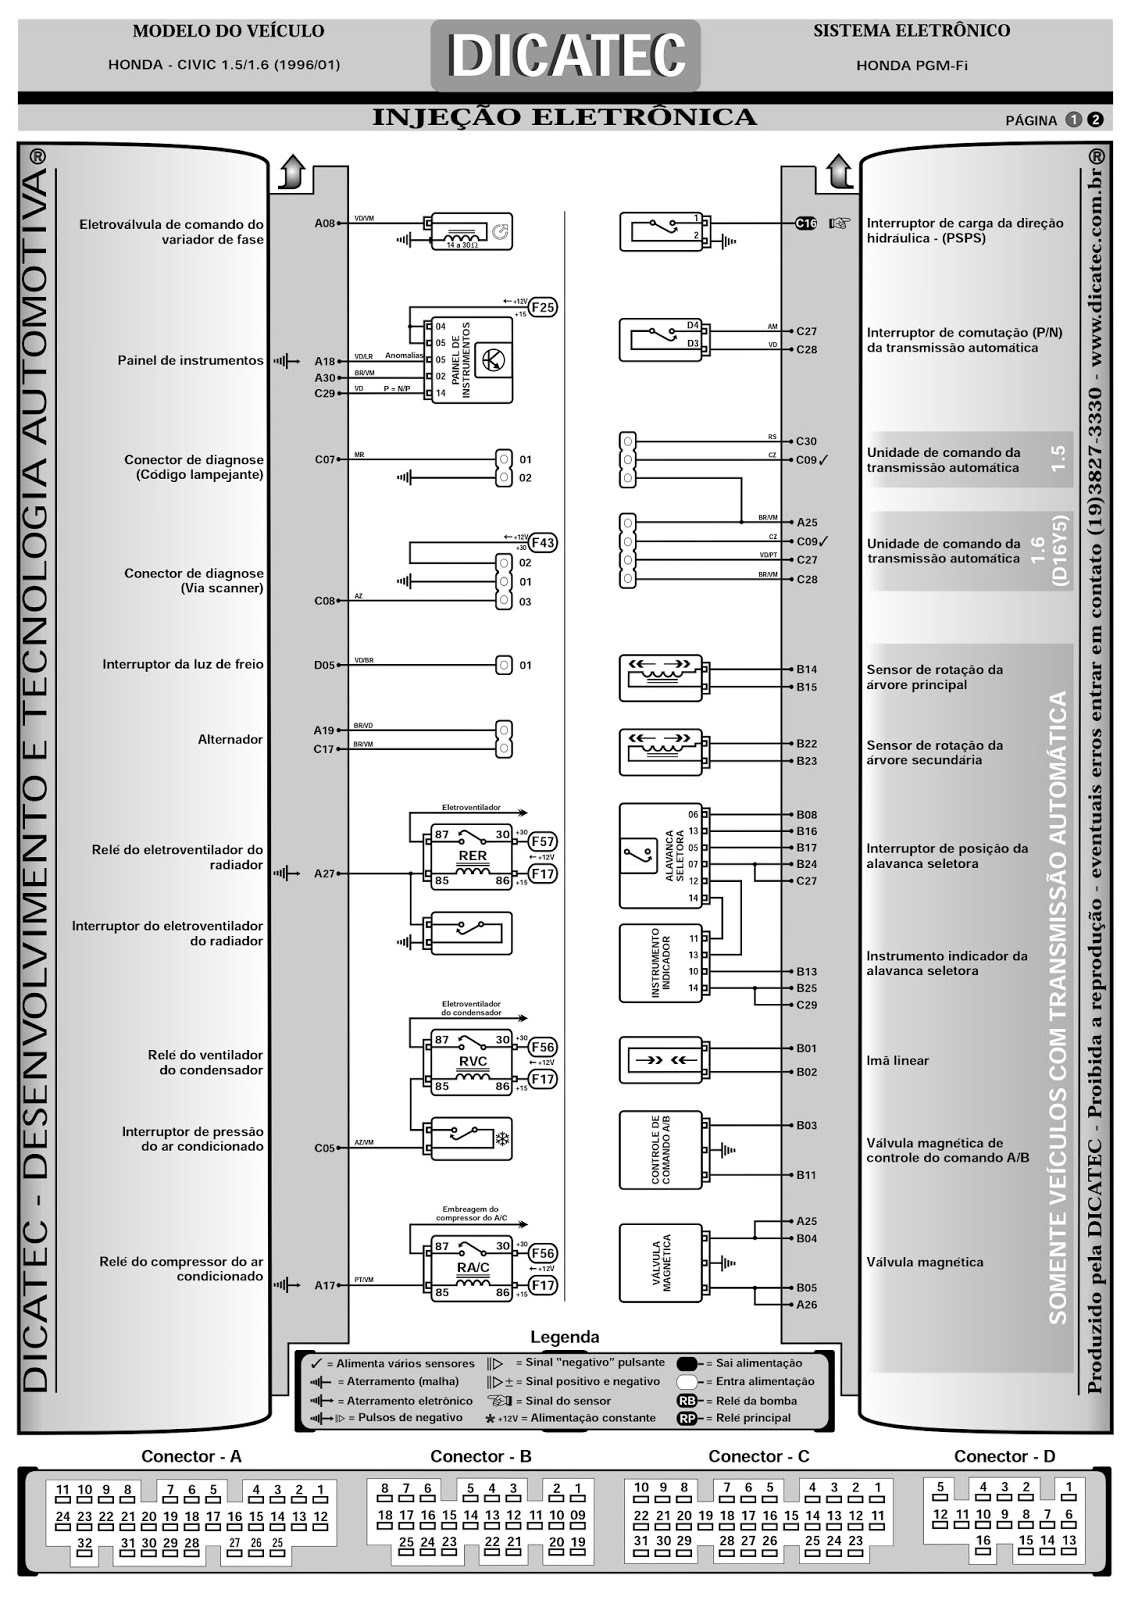 1990 Honda Civic Ecu Pinout